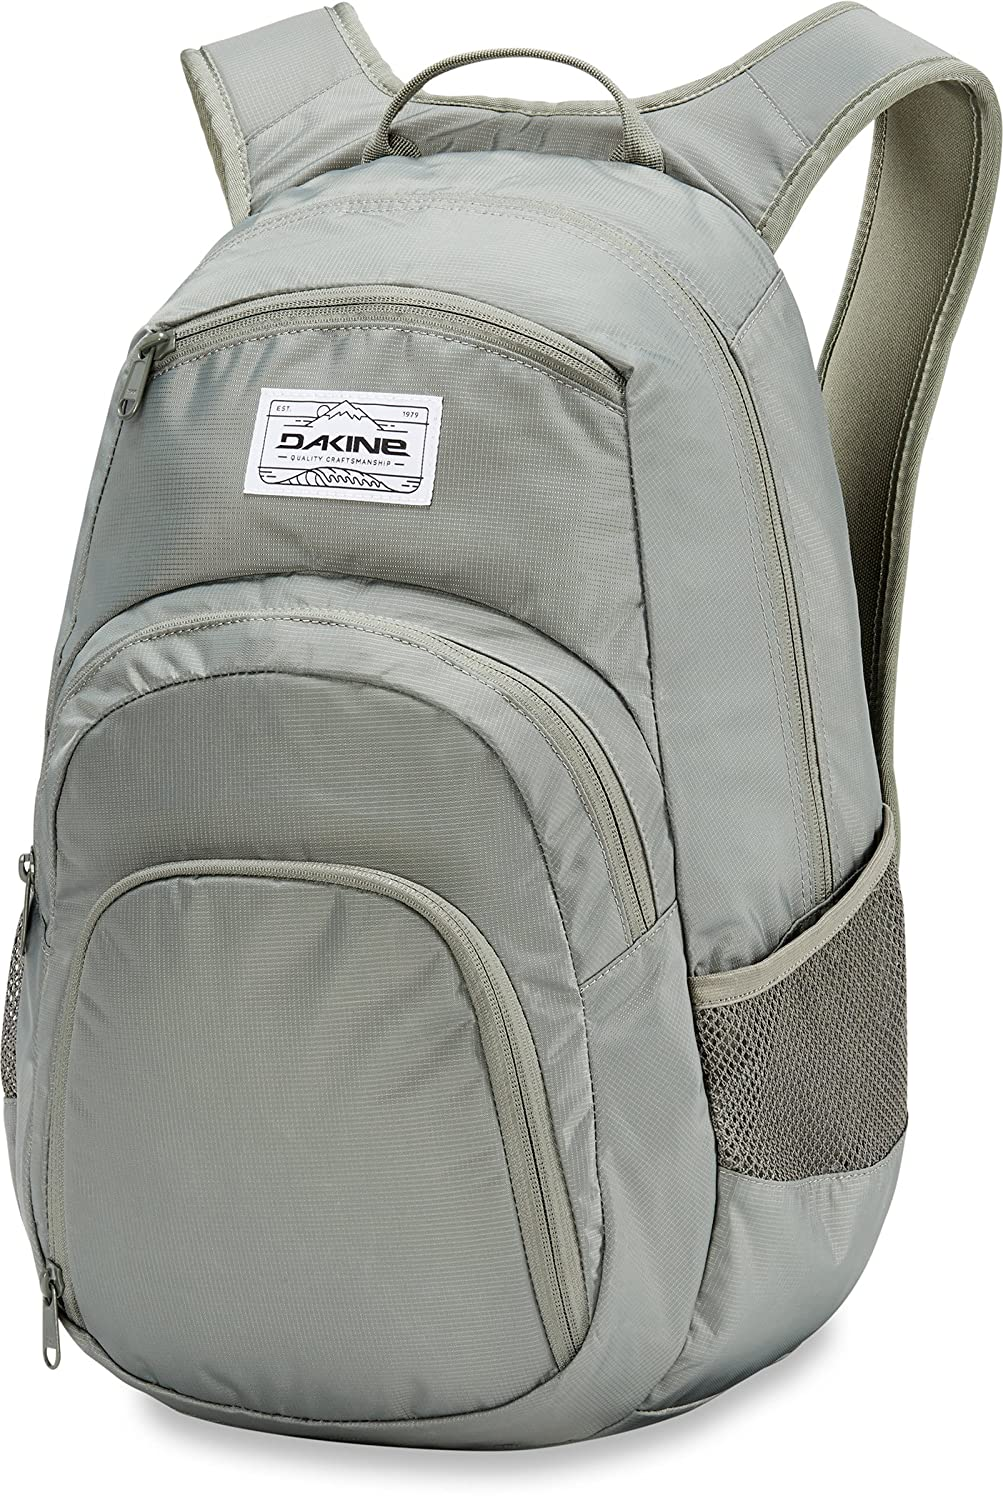 Dakine Campus Lifestyle Backpack – 25L 33L Size Options